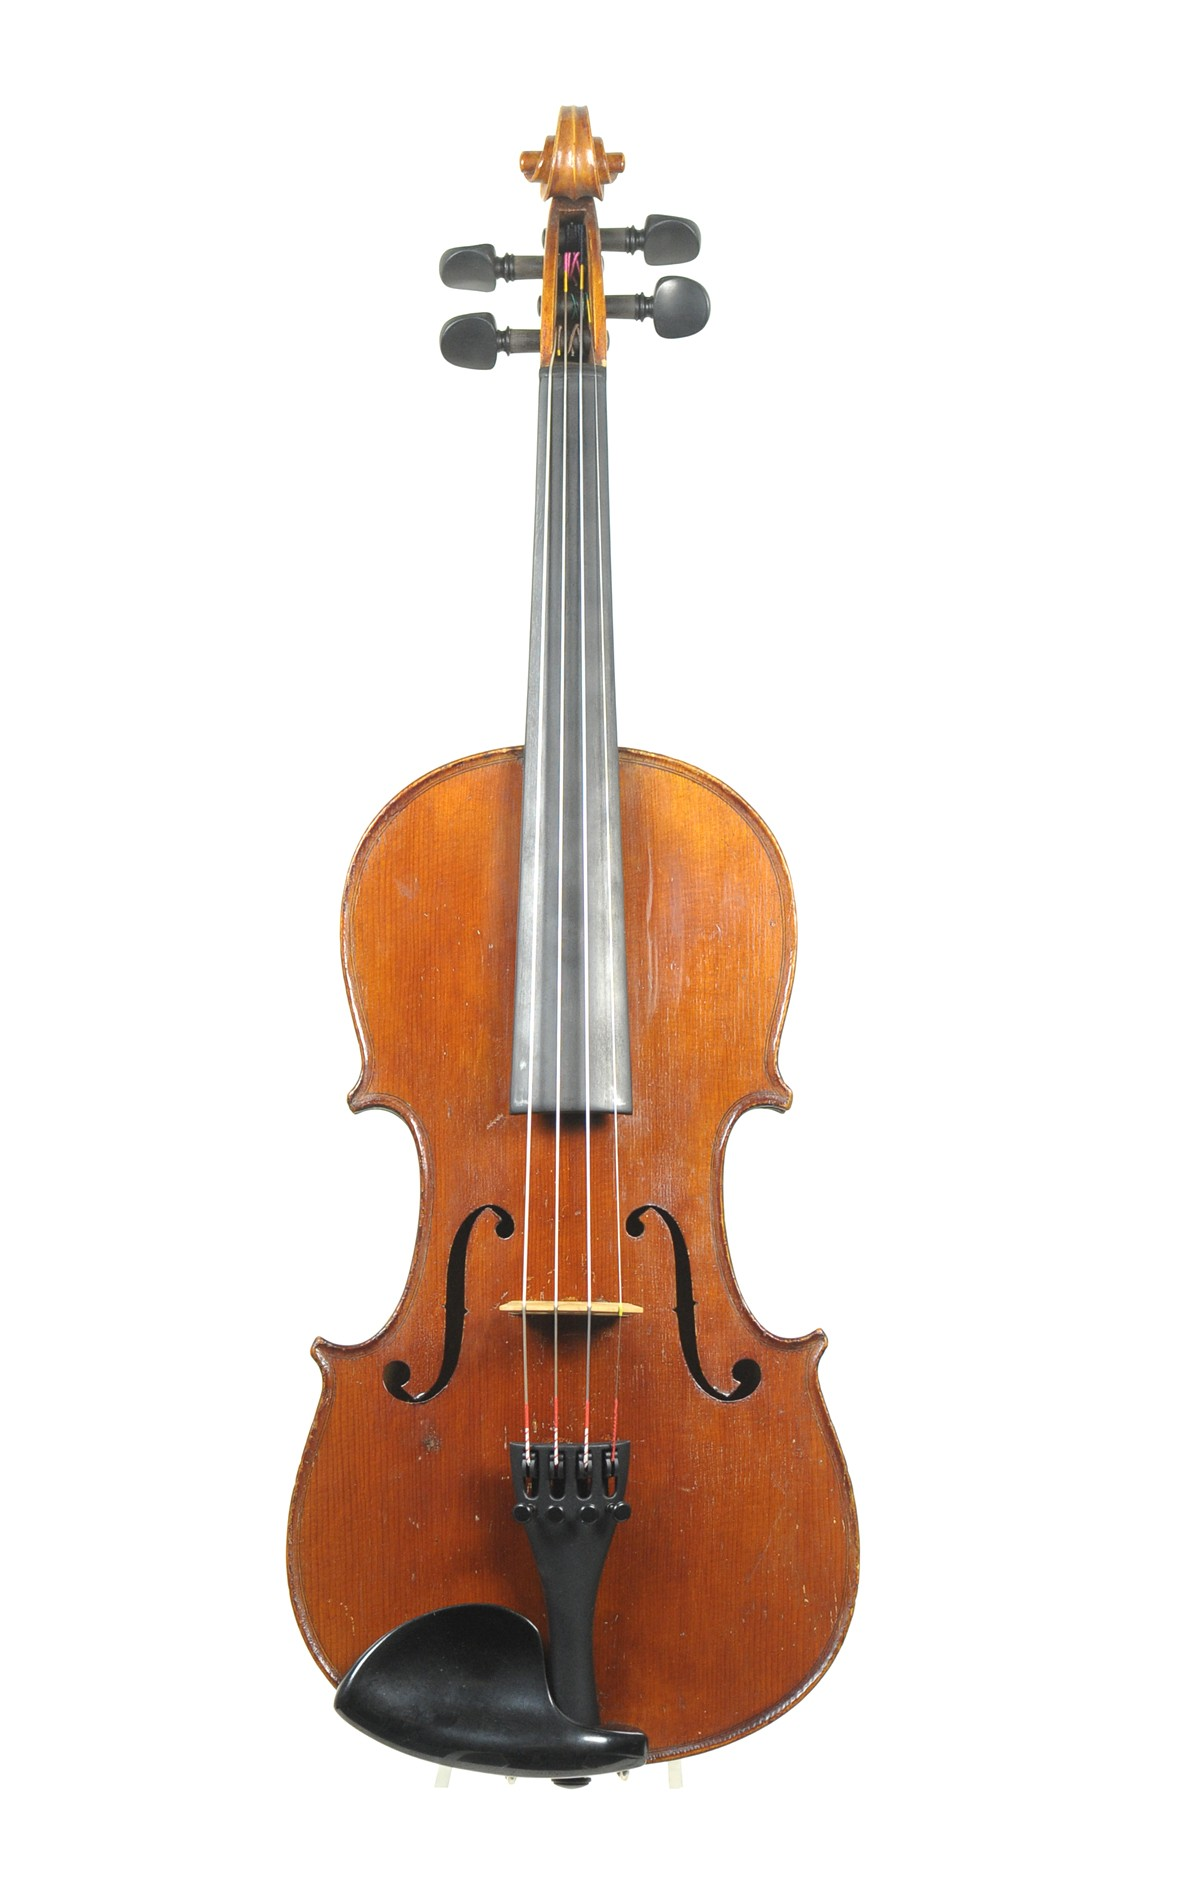 Old Mittenwald 3/4 violin, powerful, strong sound